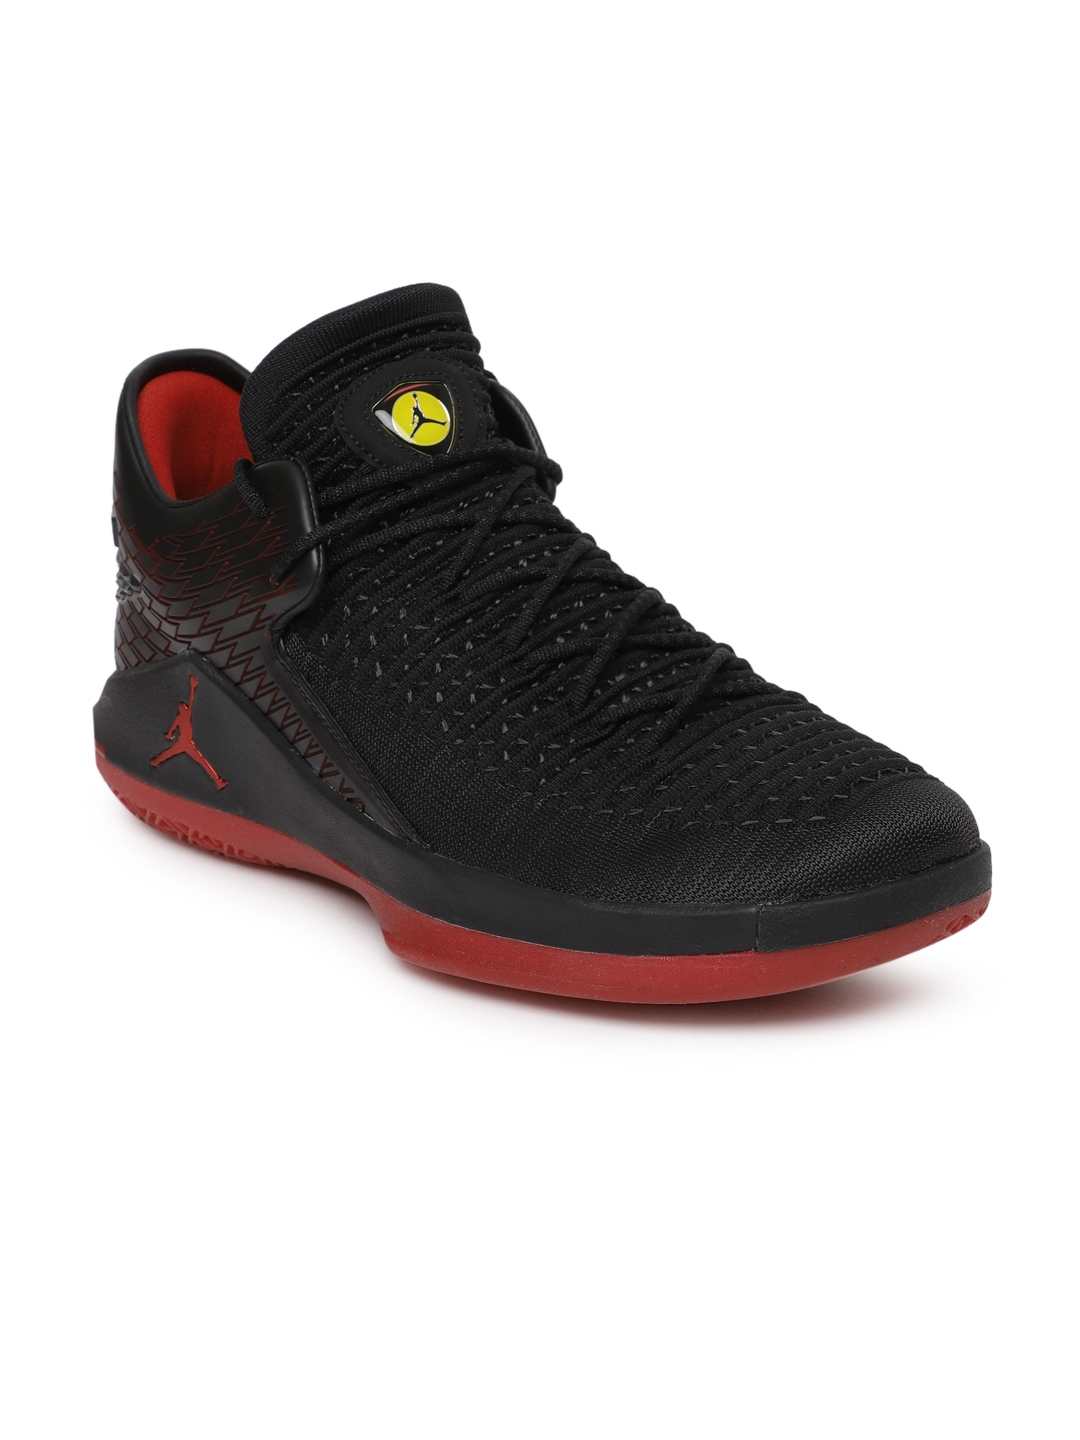 0b4af24972b Buy Nike Men Black Air Jordan XXXII Low Basketball Shoes - Sports ...